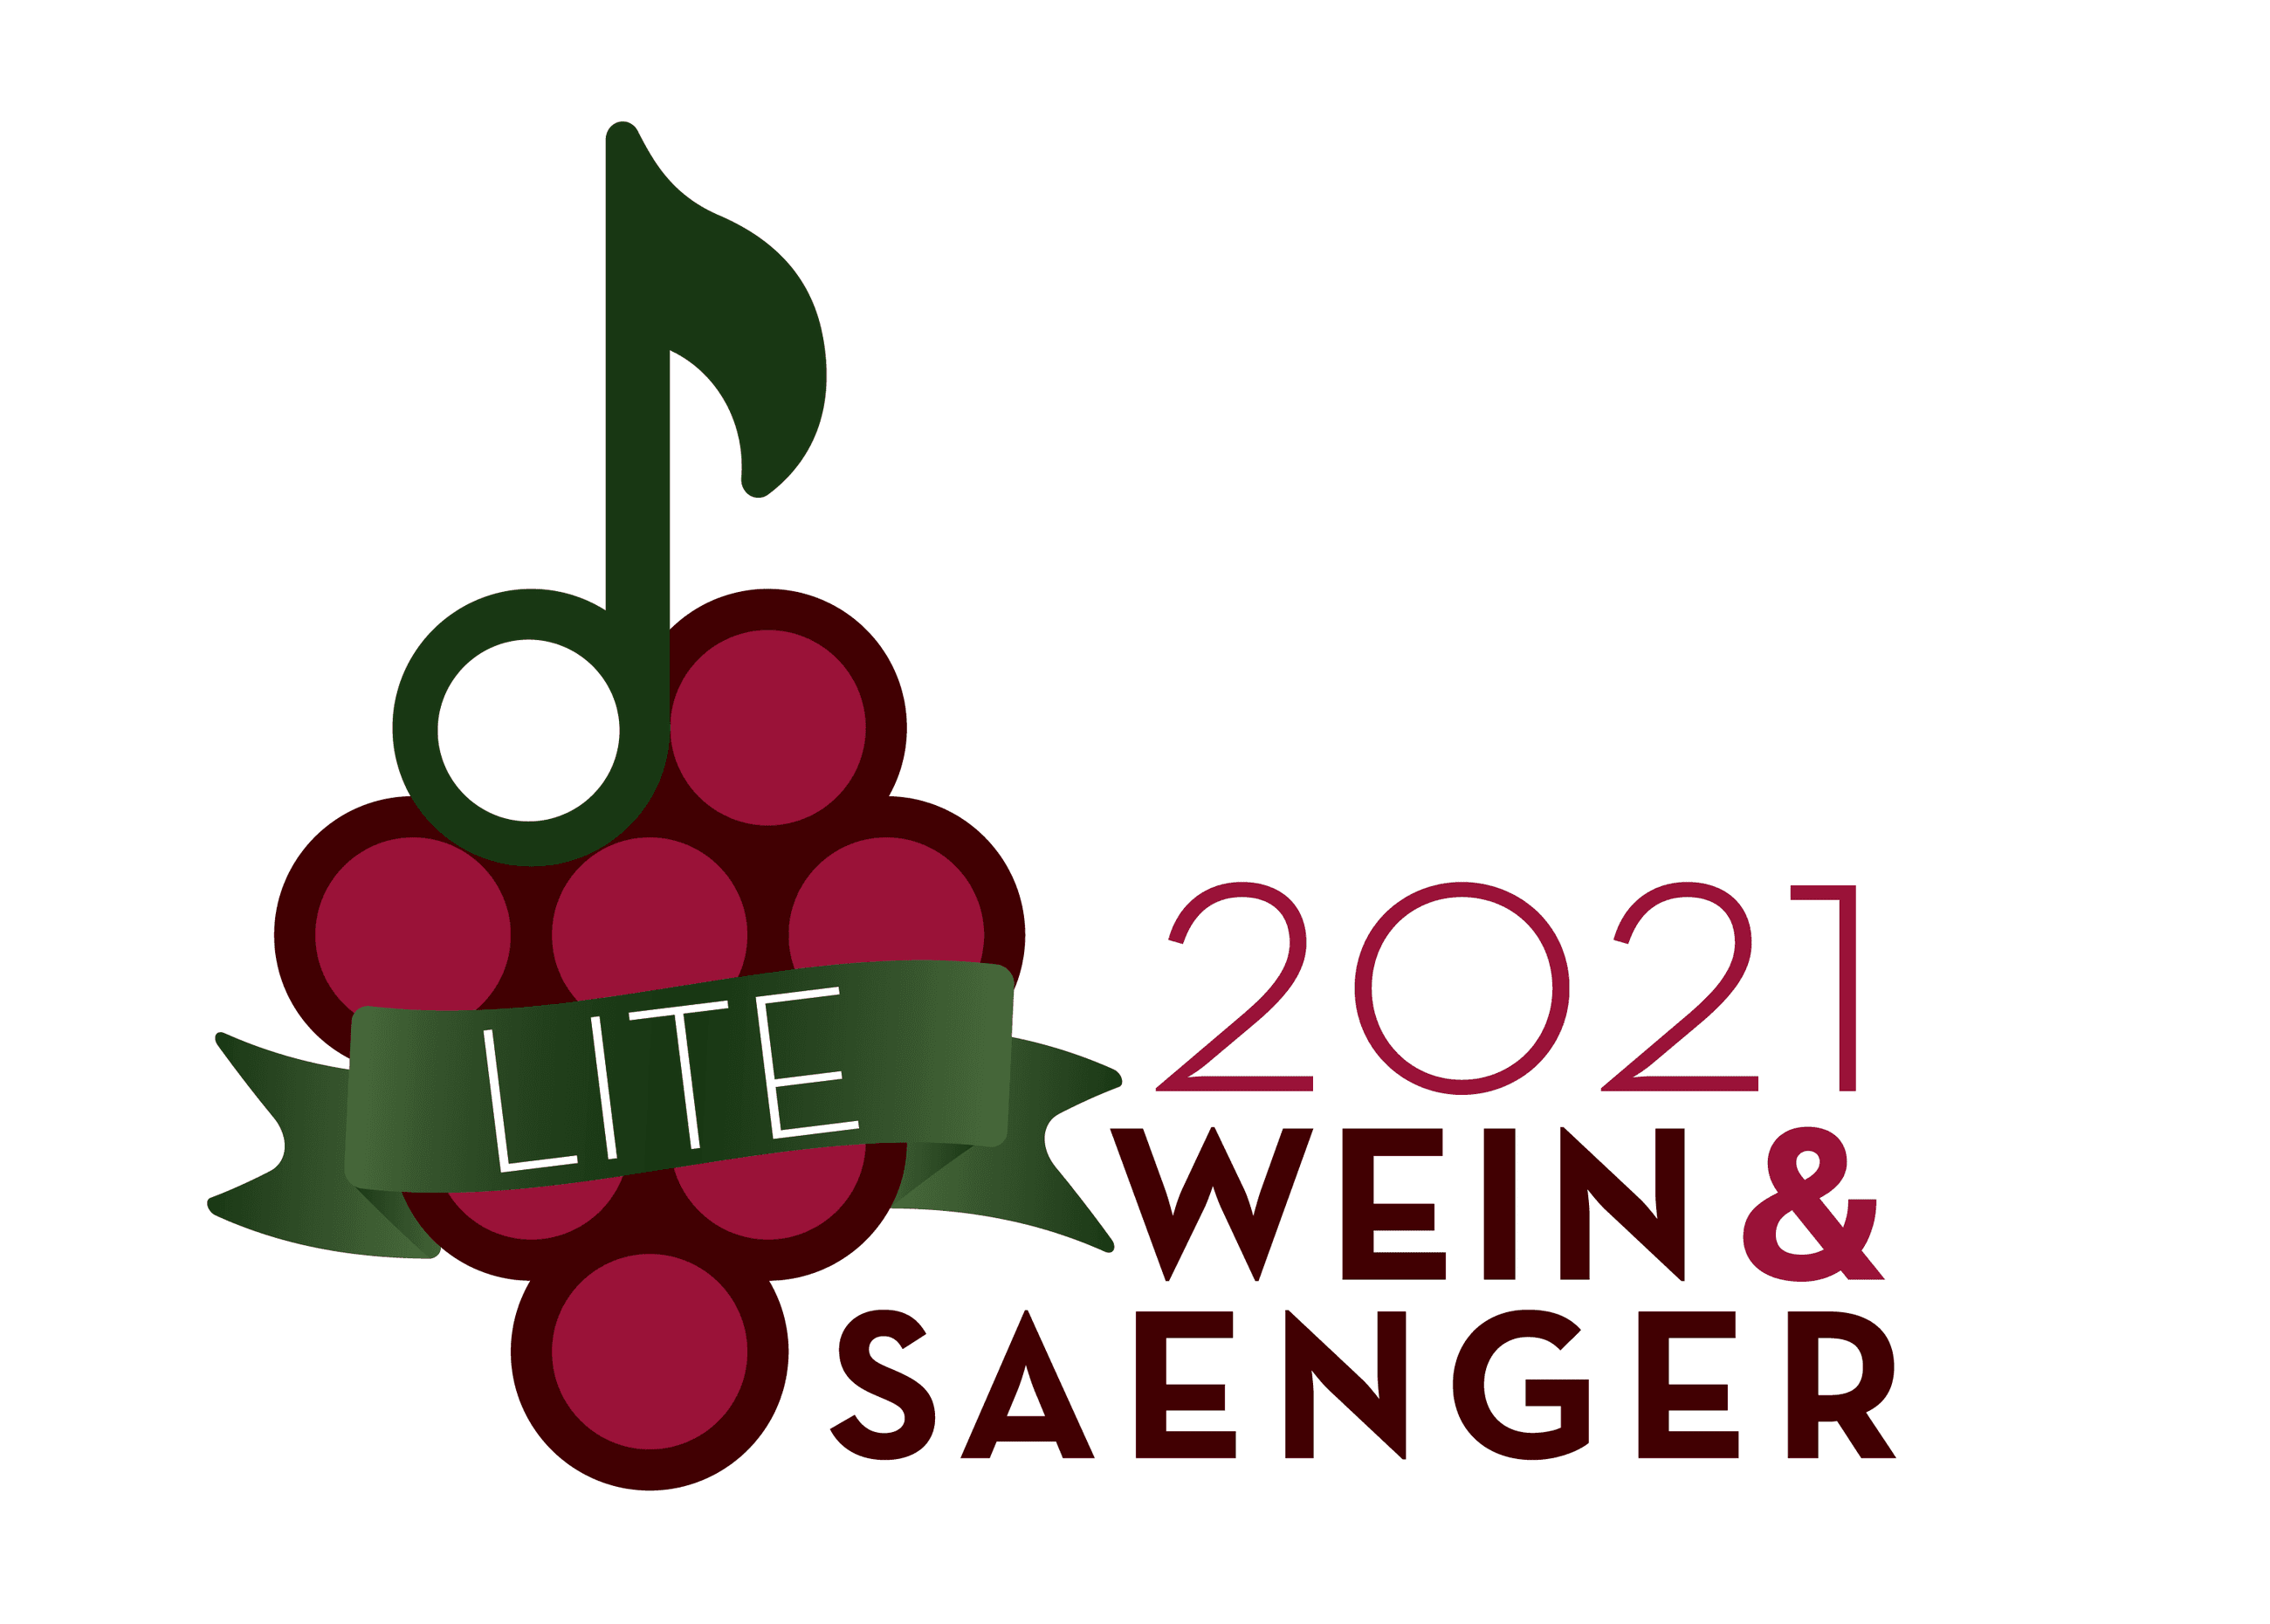 2021 WEIN SAEN - LOGO-FINAL-02